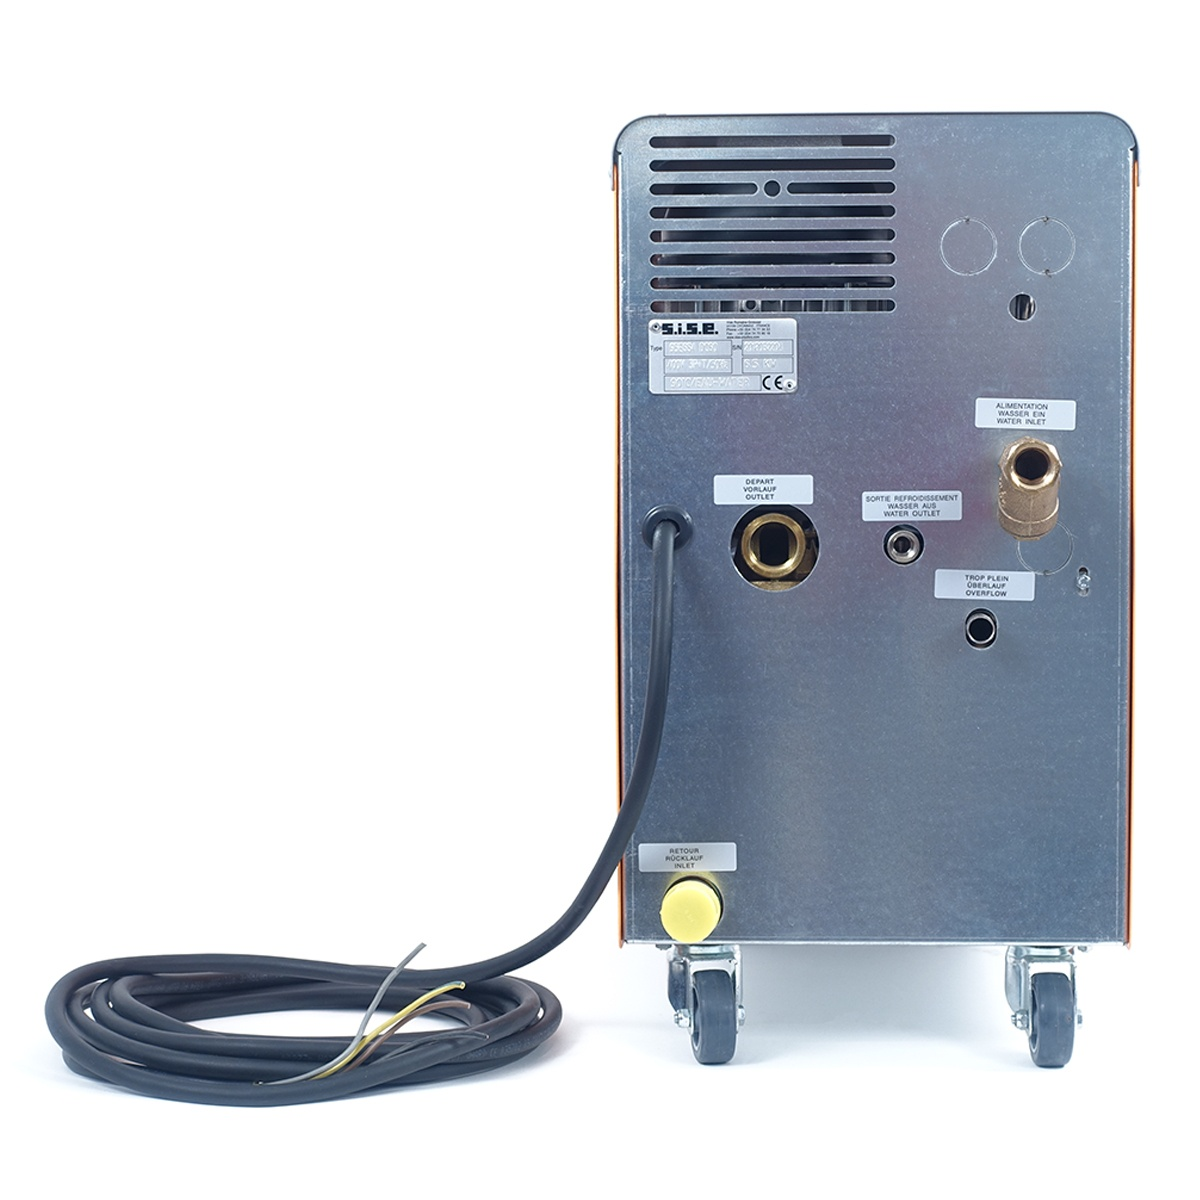 Water mold temperature controller 90°C SISE Type 95E6-9S4